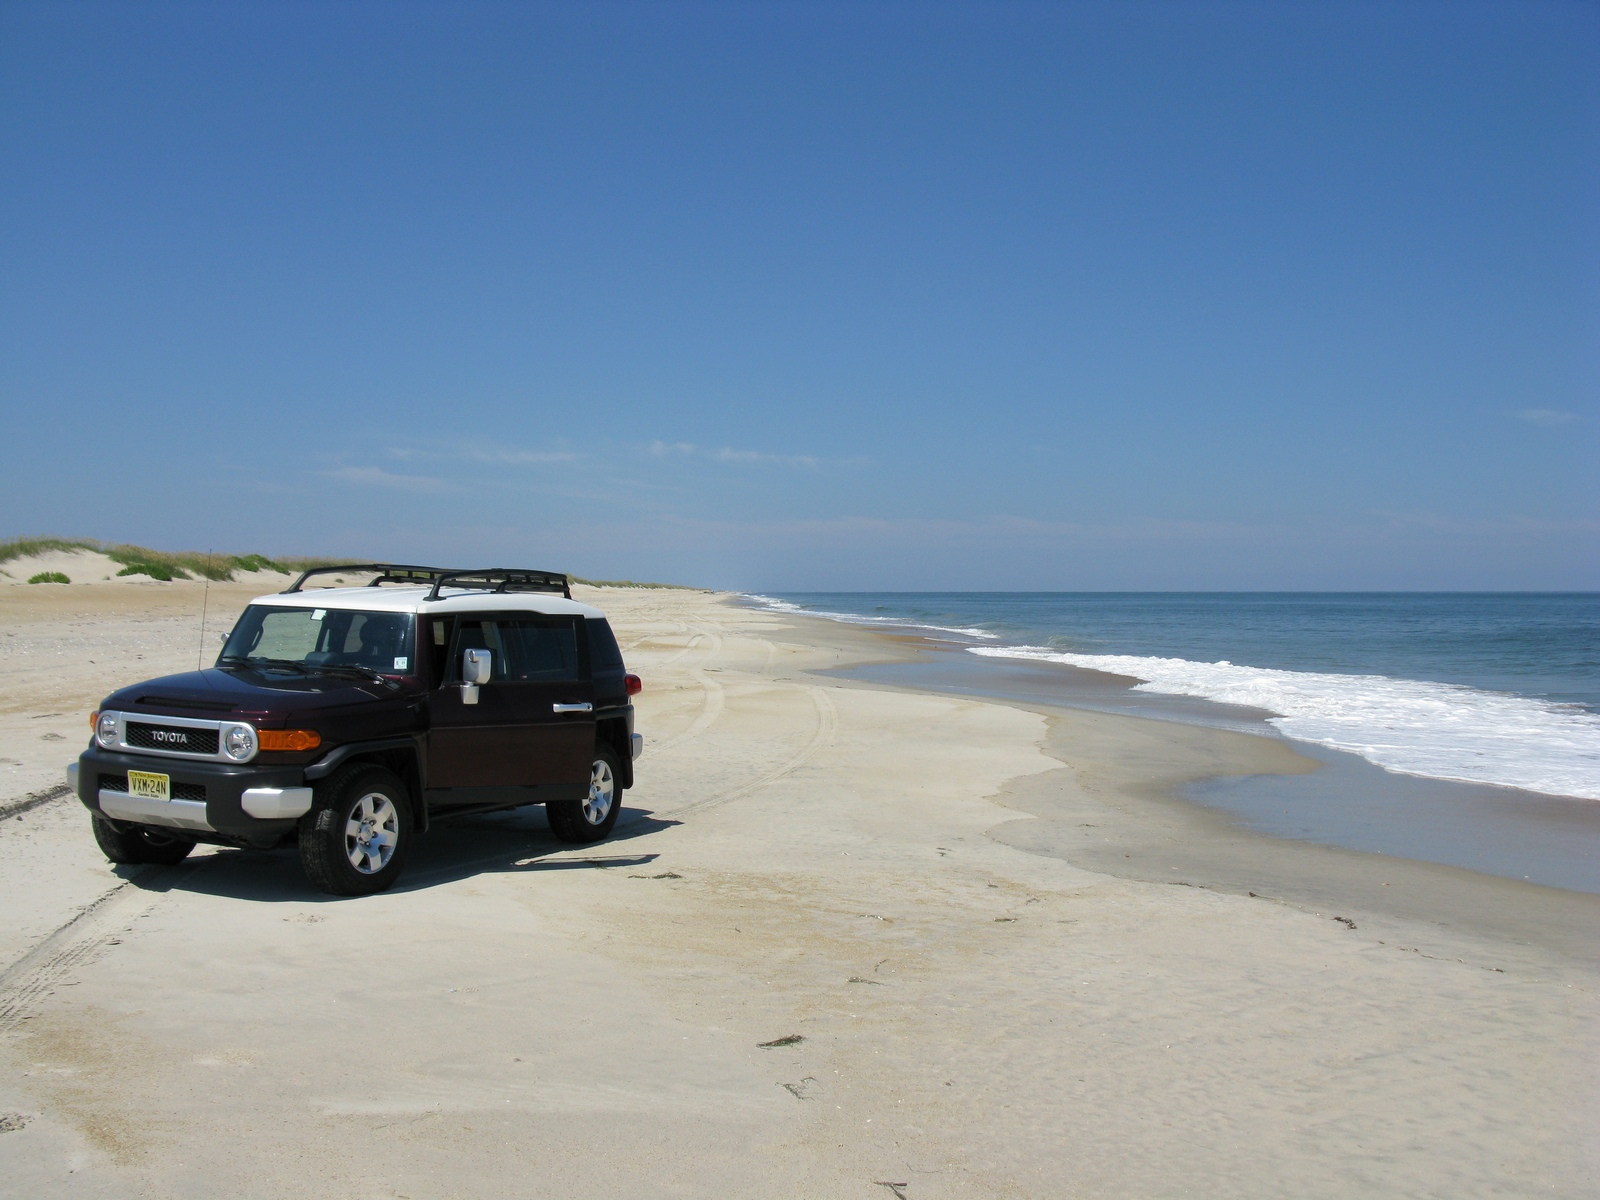 nat_seashore_fj_2.jpg